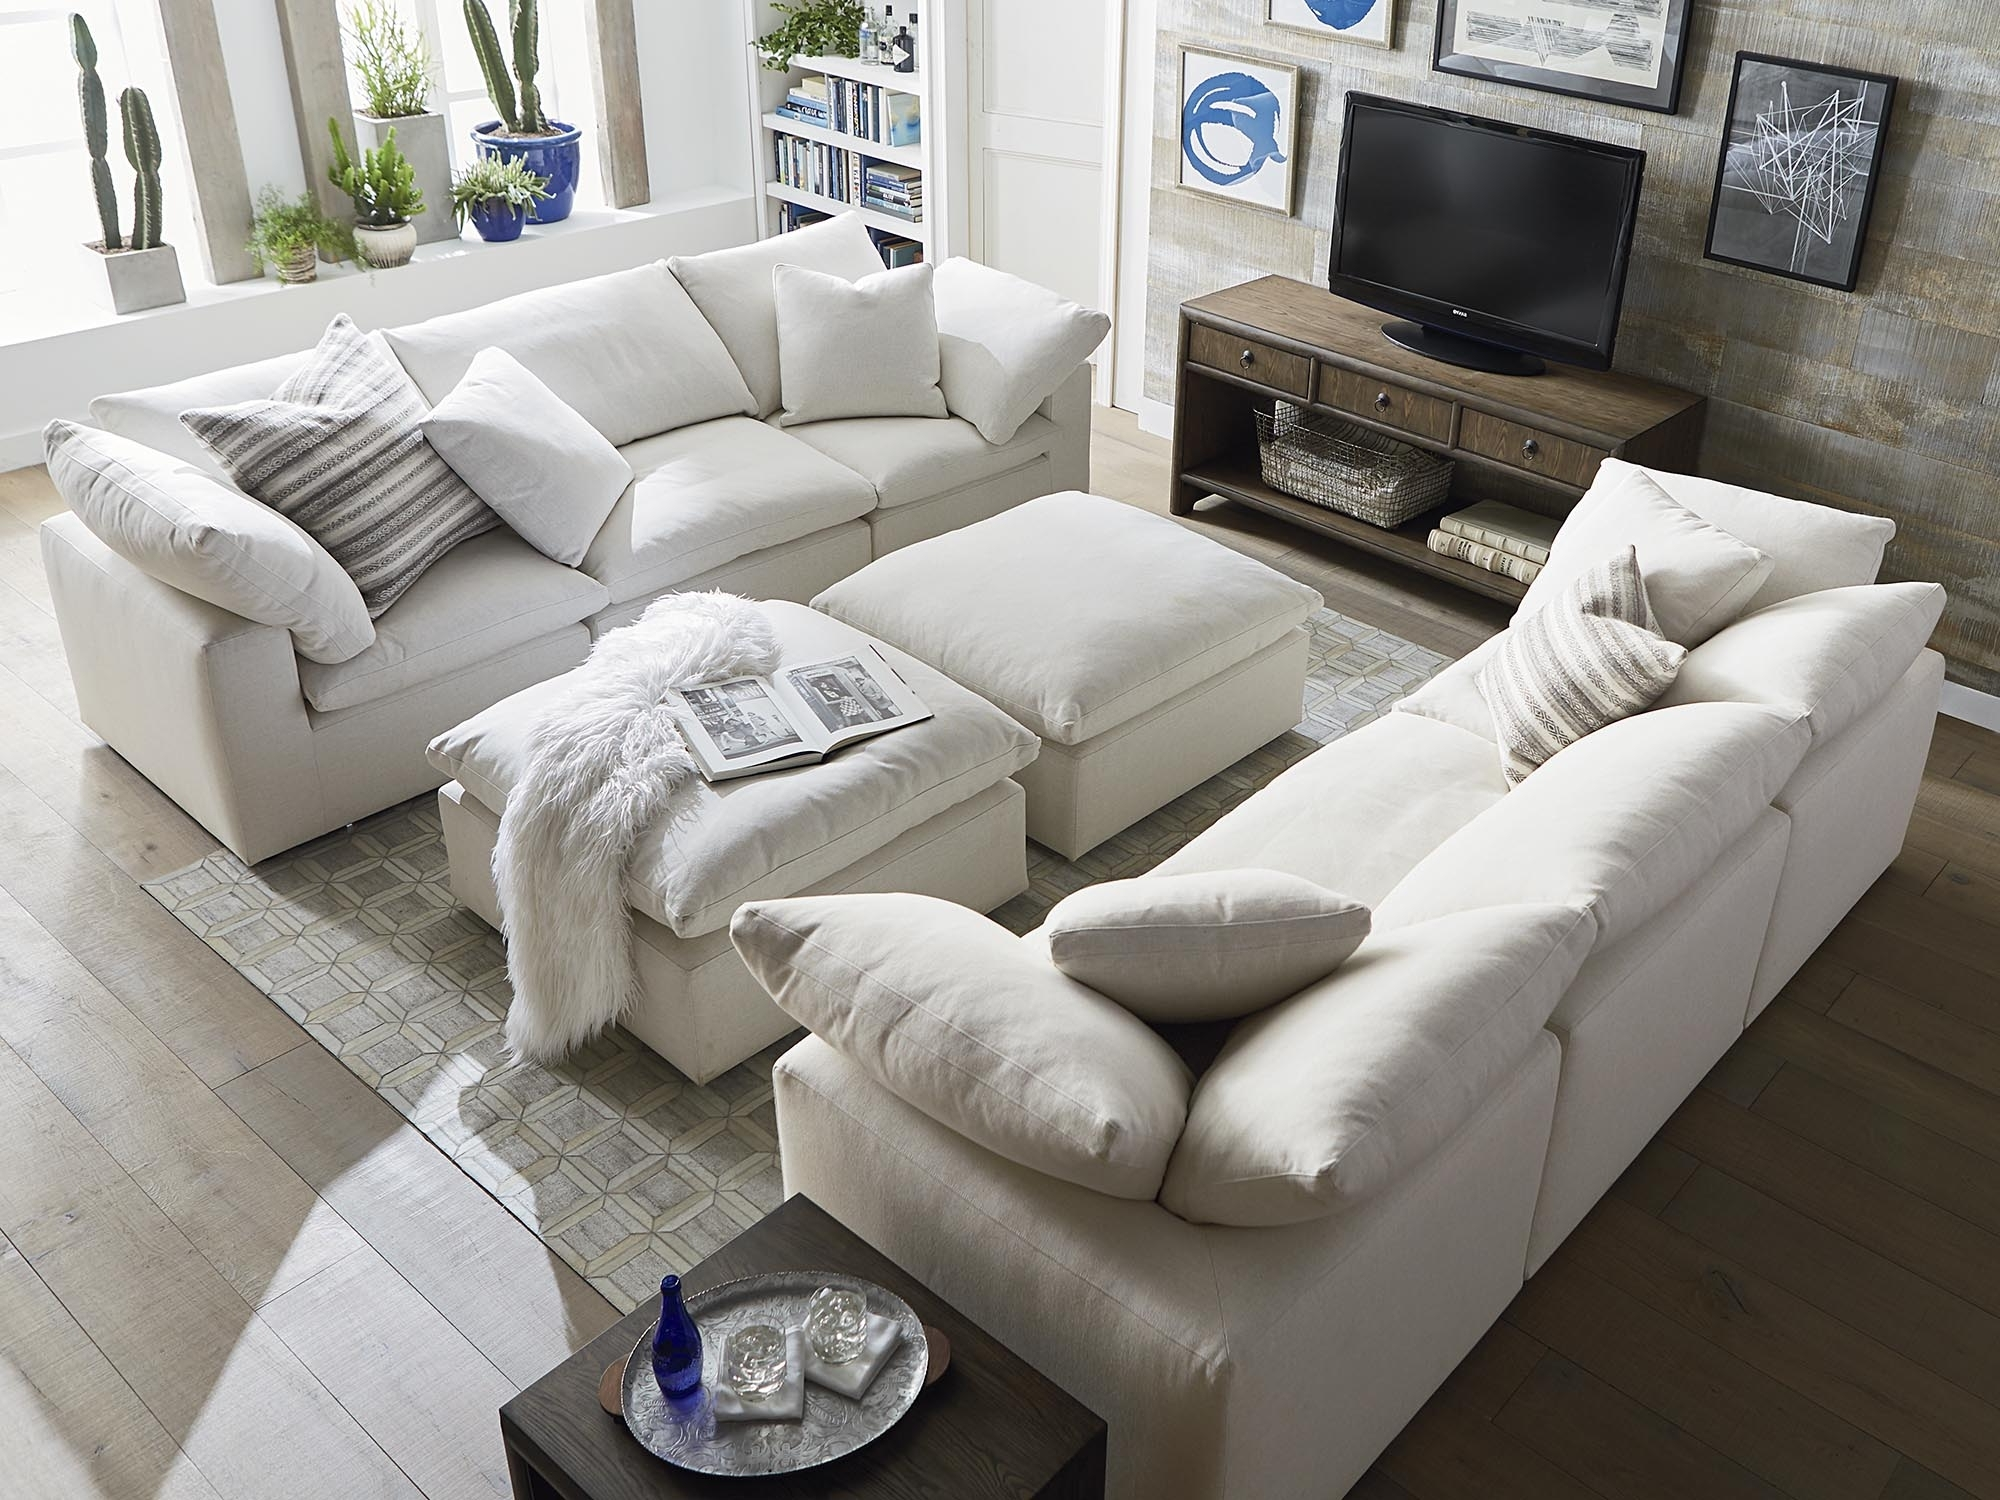 Fabric Sofas And Couchesbassett Home Furnishings With Regard To Most Up To Date Scarborough Sectional Sofas (View 6 of 20)